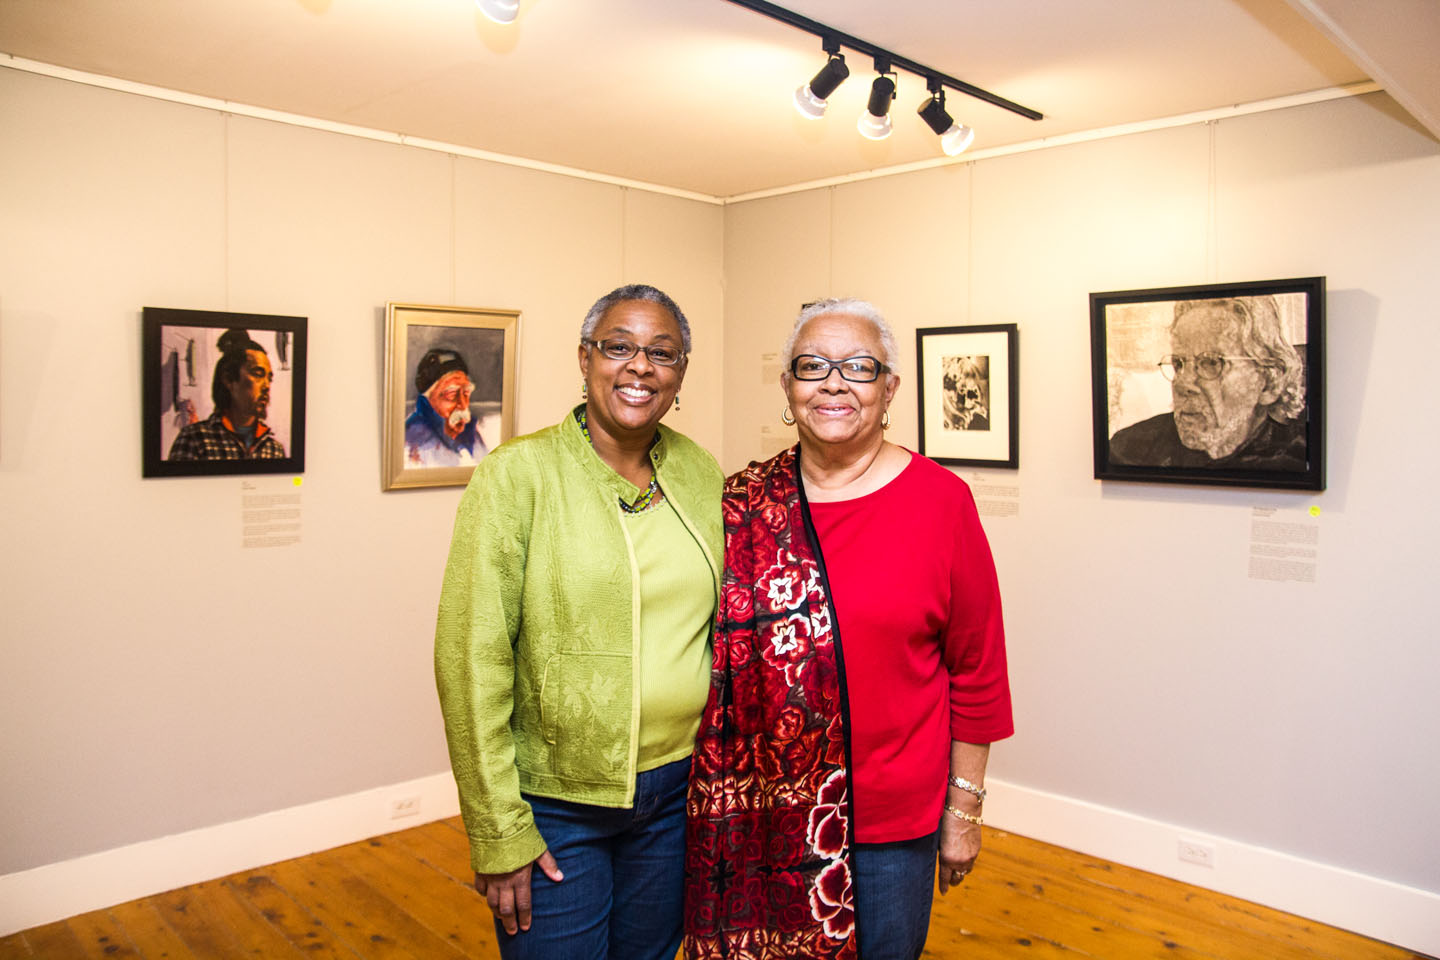 Ann Smith and Francine Kelly recipients of the 2015 Creative Living Award